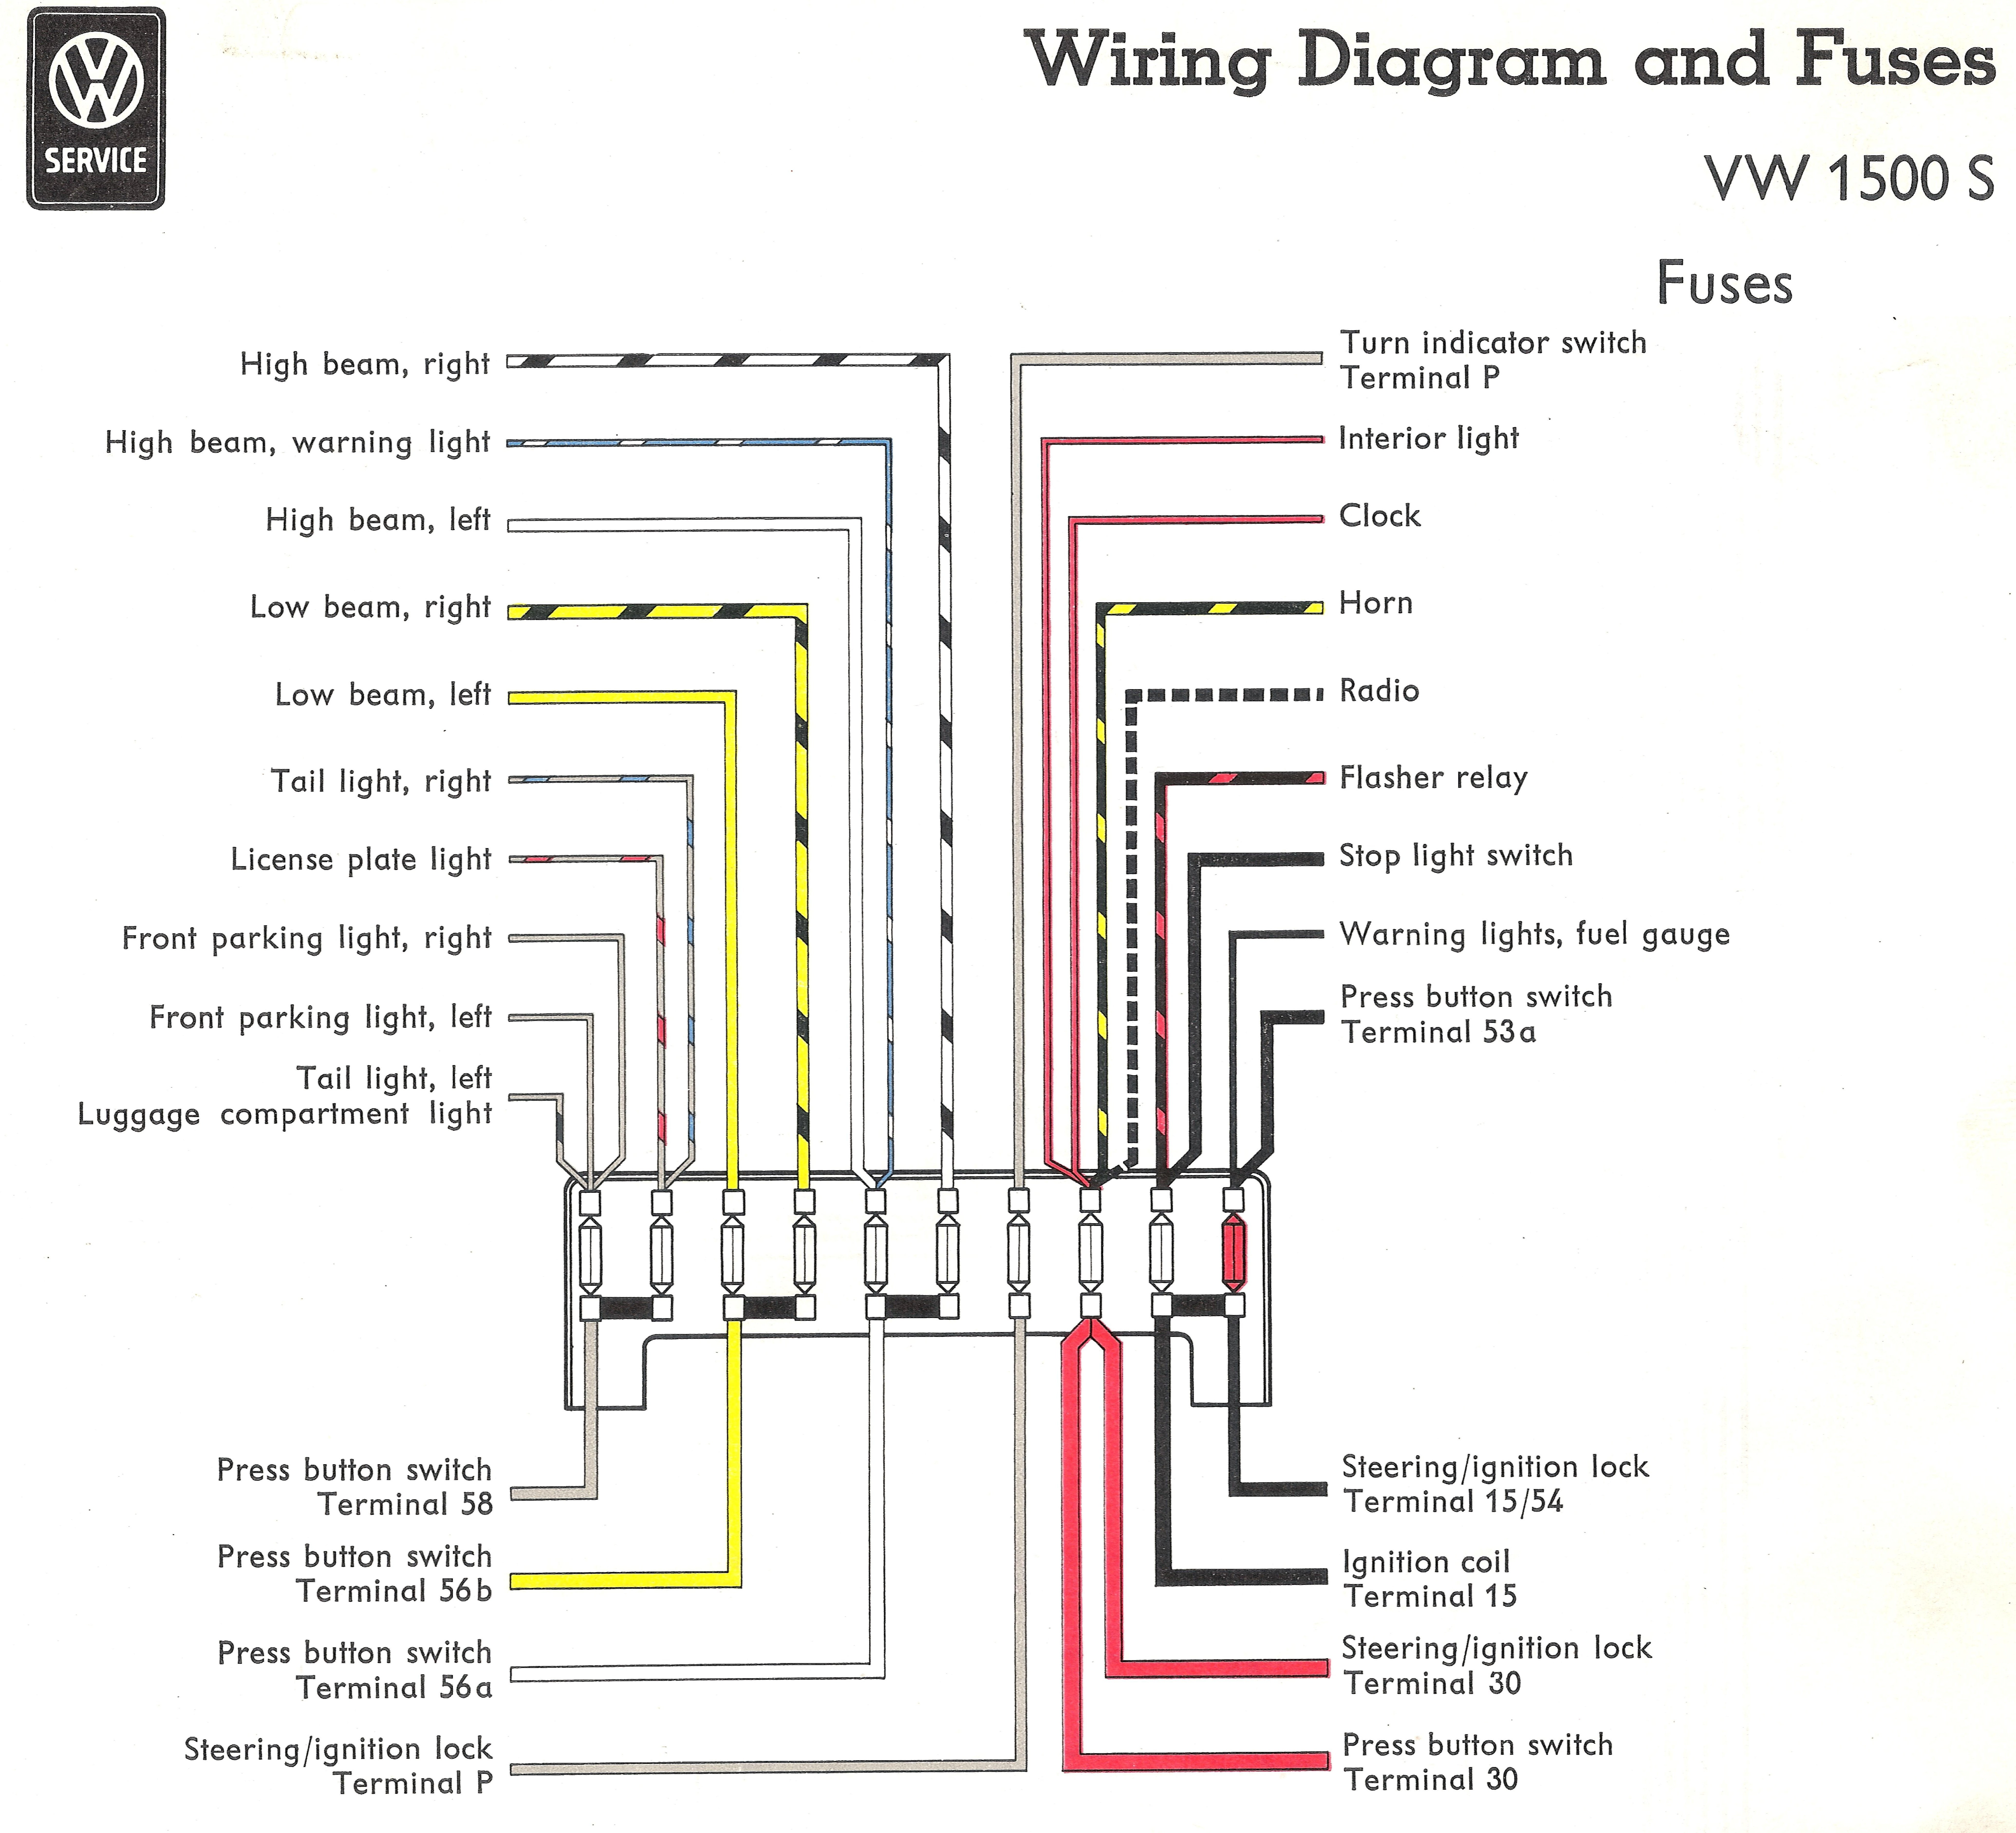 2001 Vw Passat Engine Diagram Vw Wiring and Fuses Wiring Info • Of 2001 Vw Passat Engine Diagram